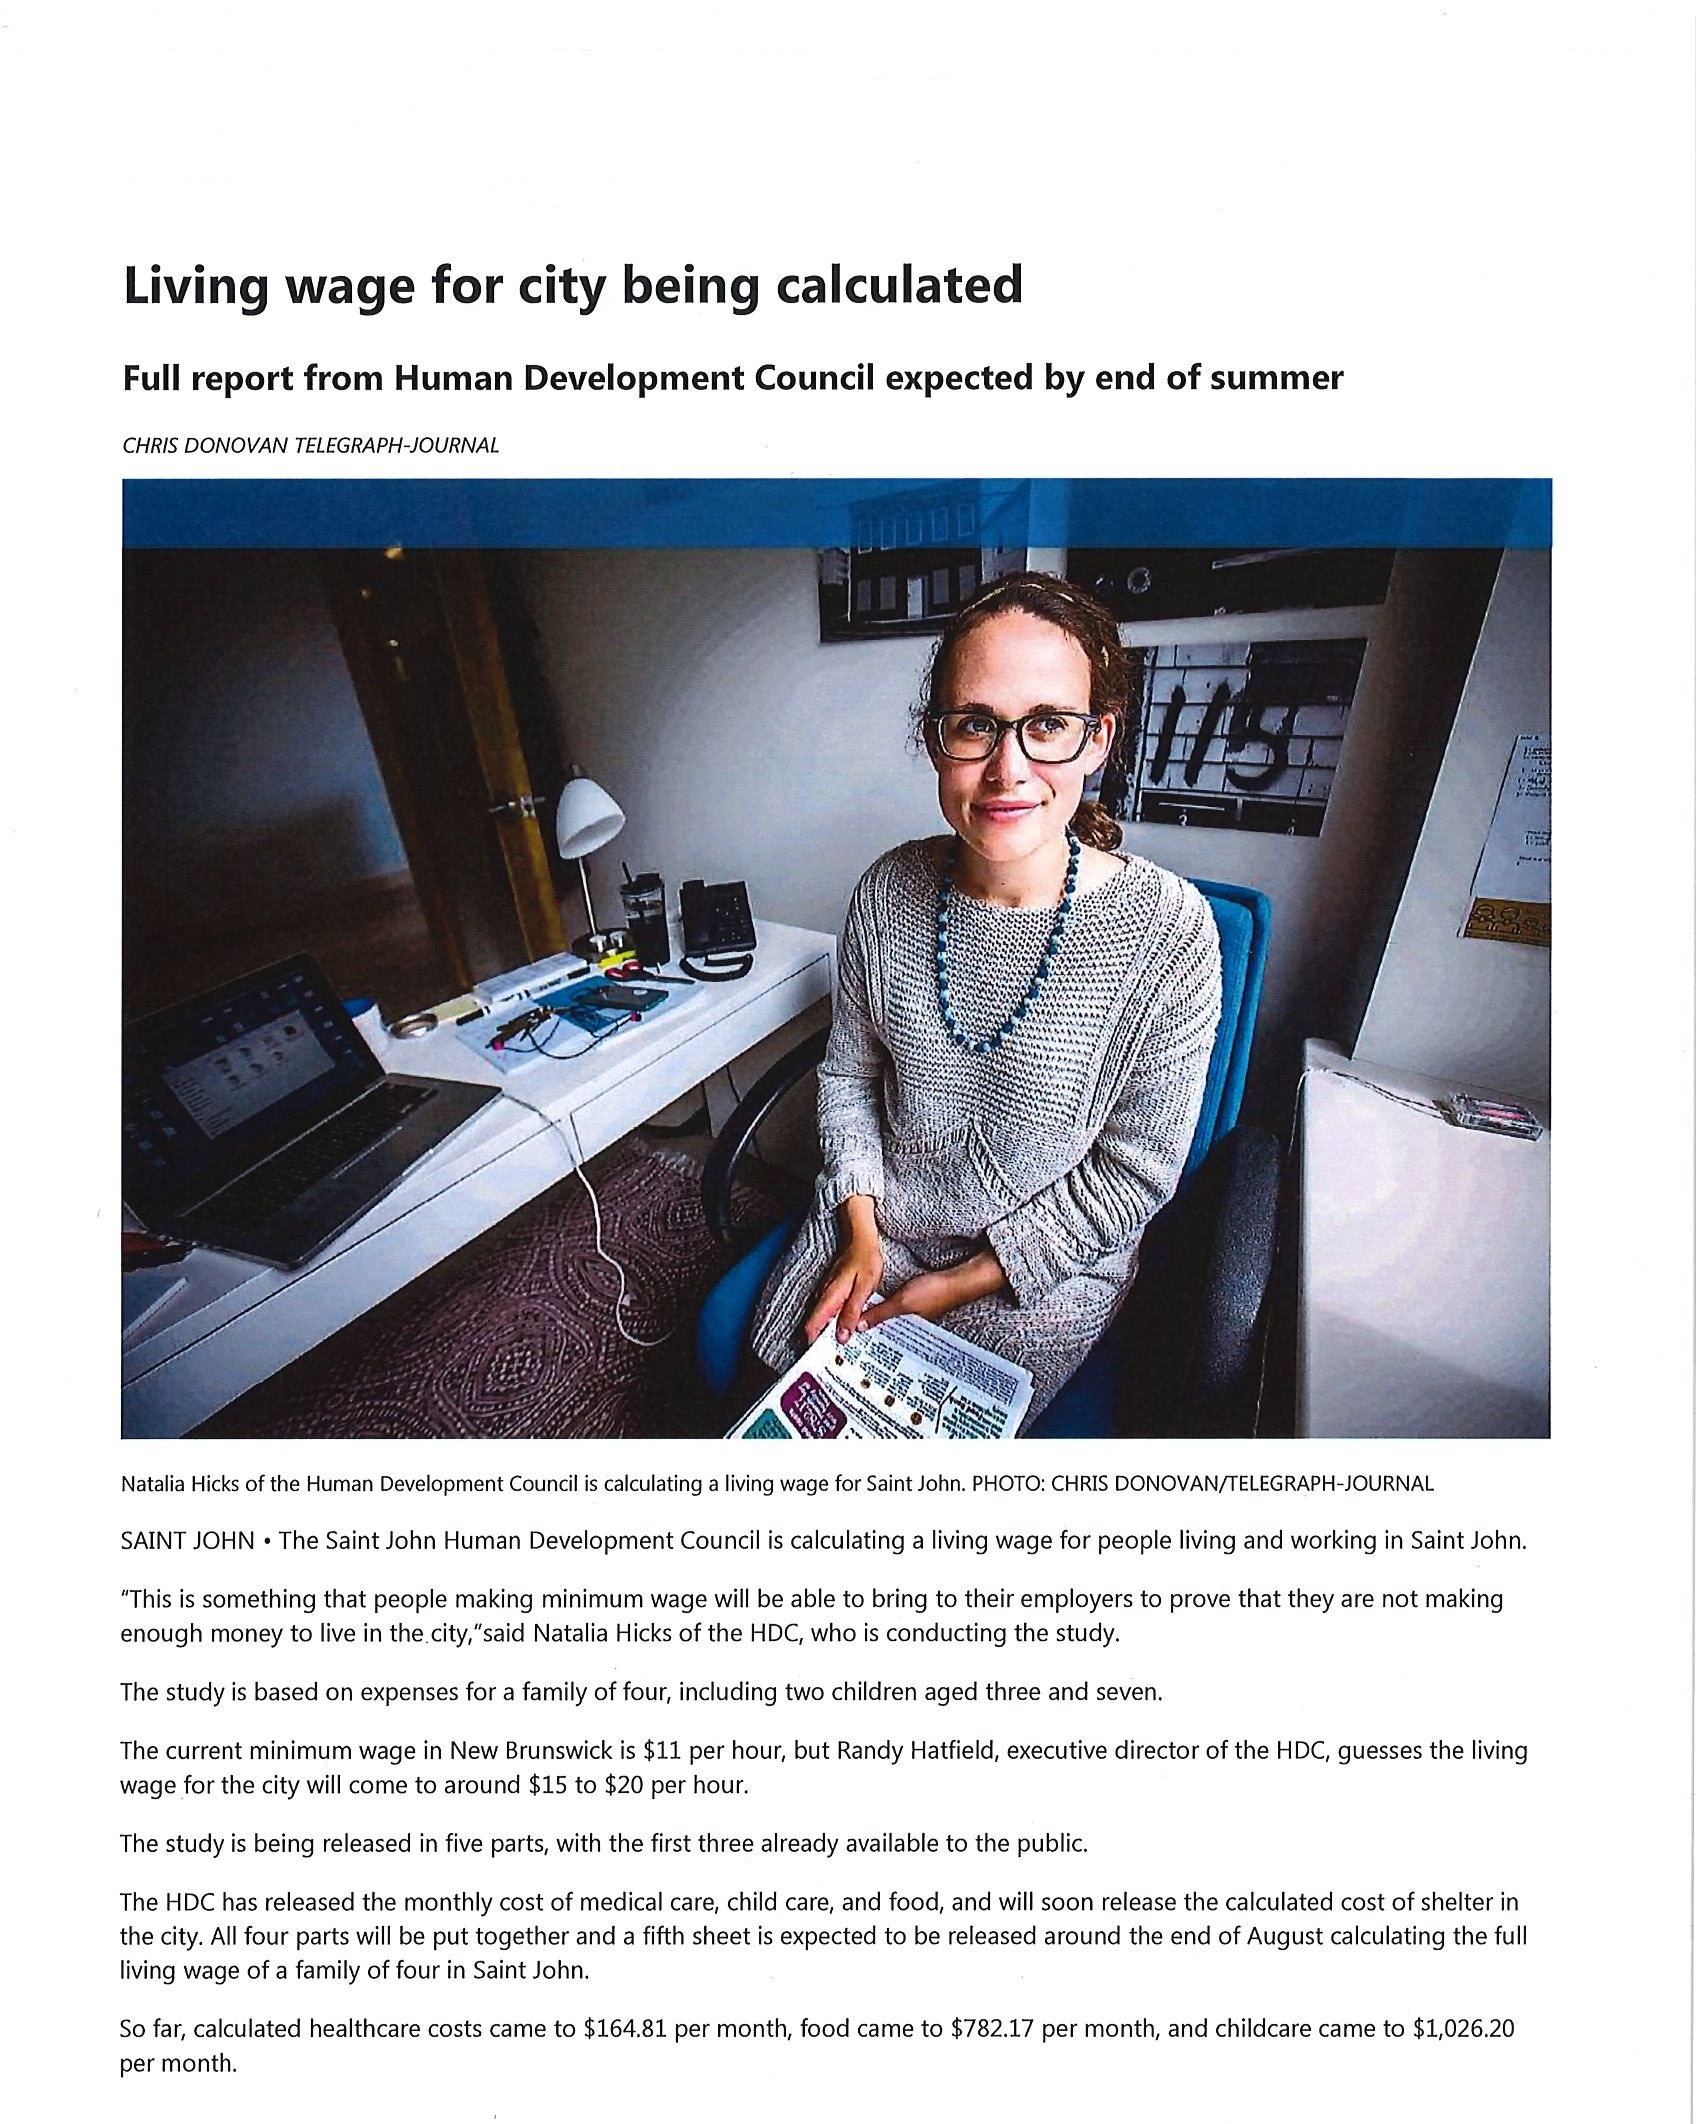 Calculating Living Wage